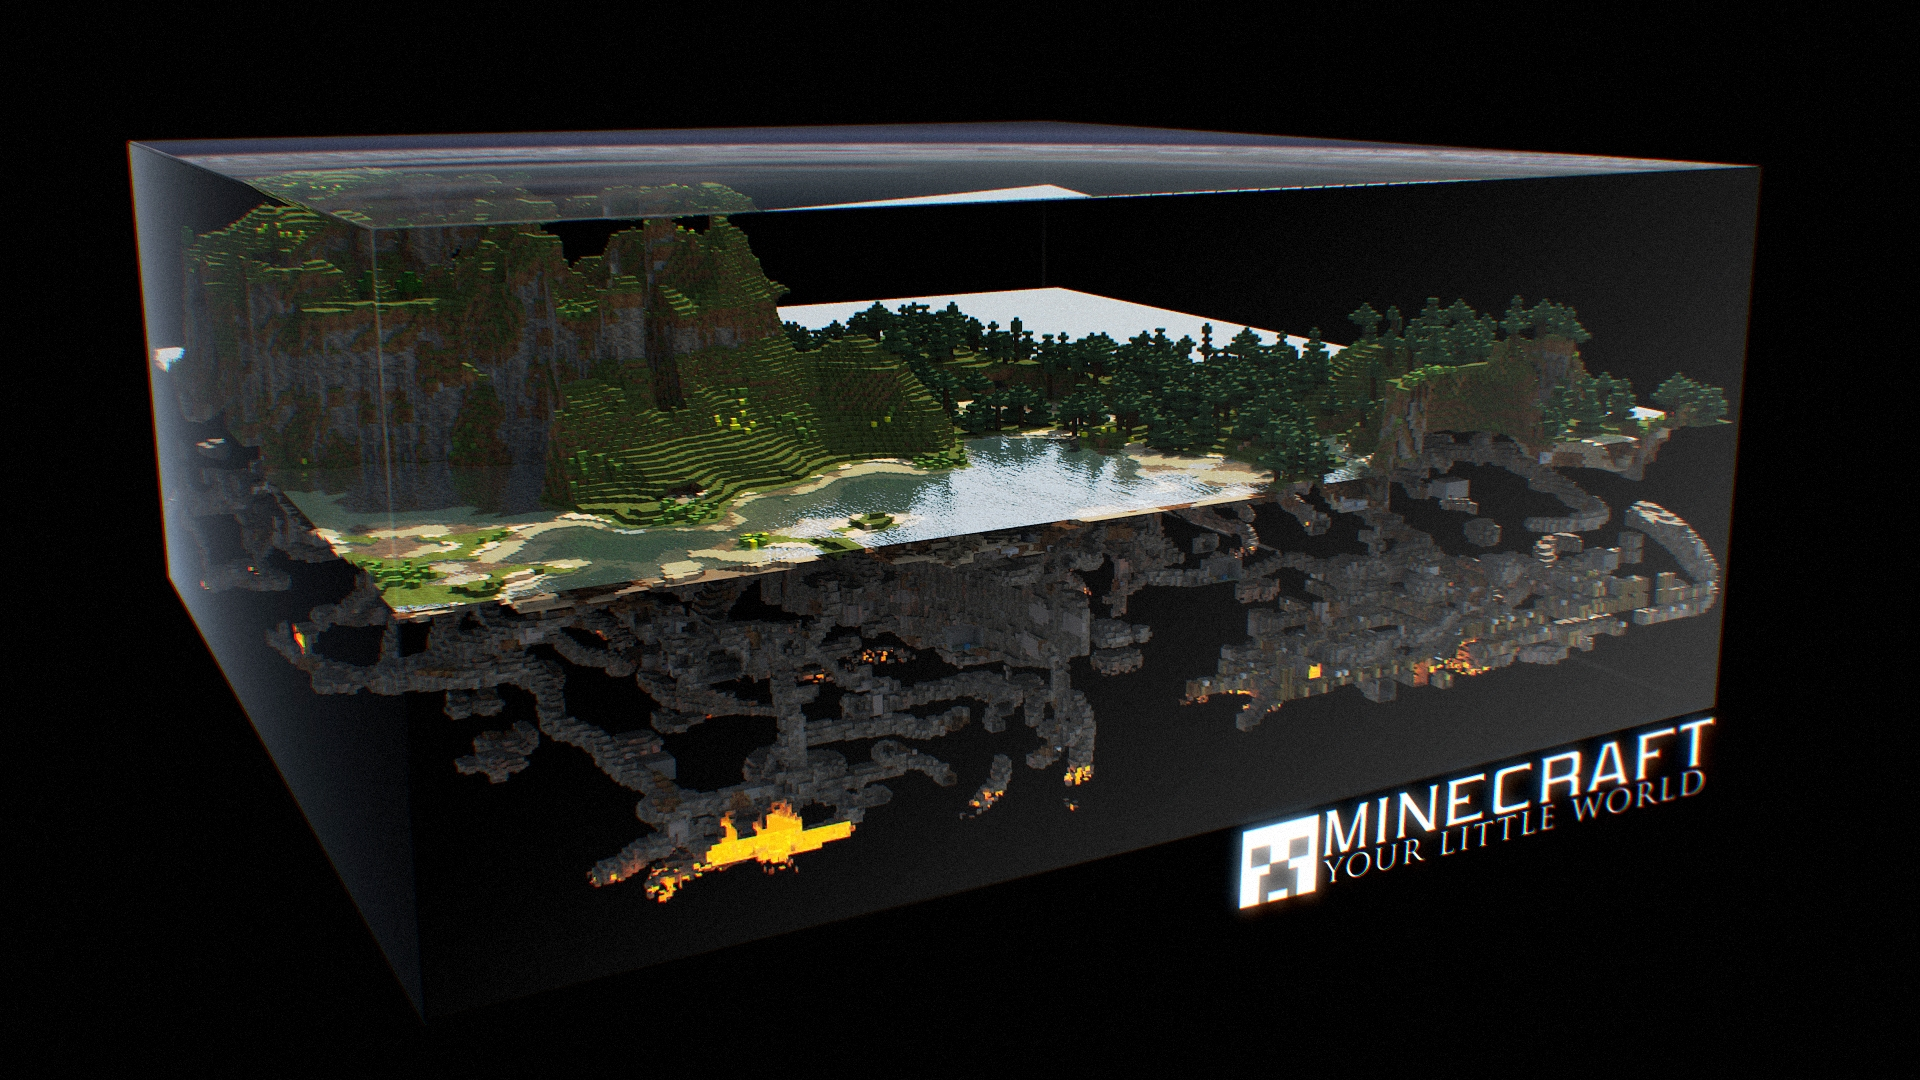 download Epic Minecraft Cross Section Wallpaper image Le 1920x1080